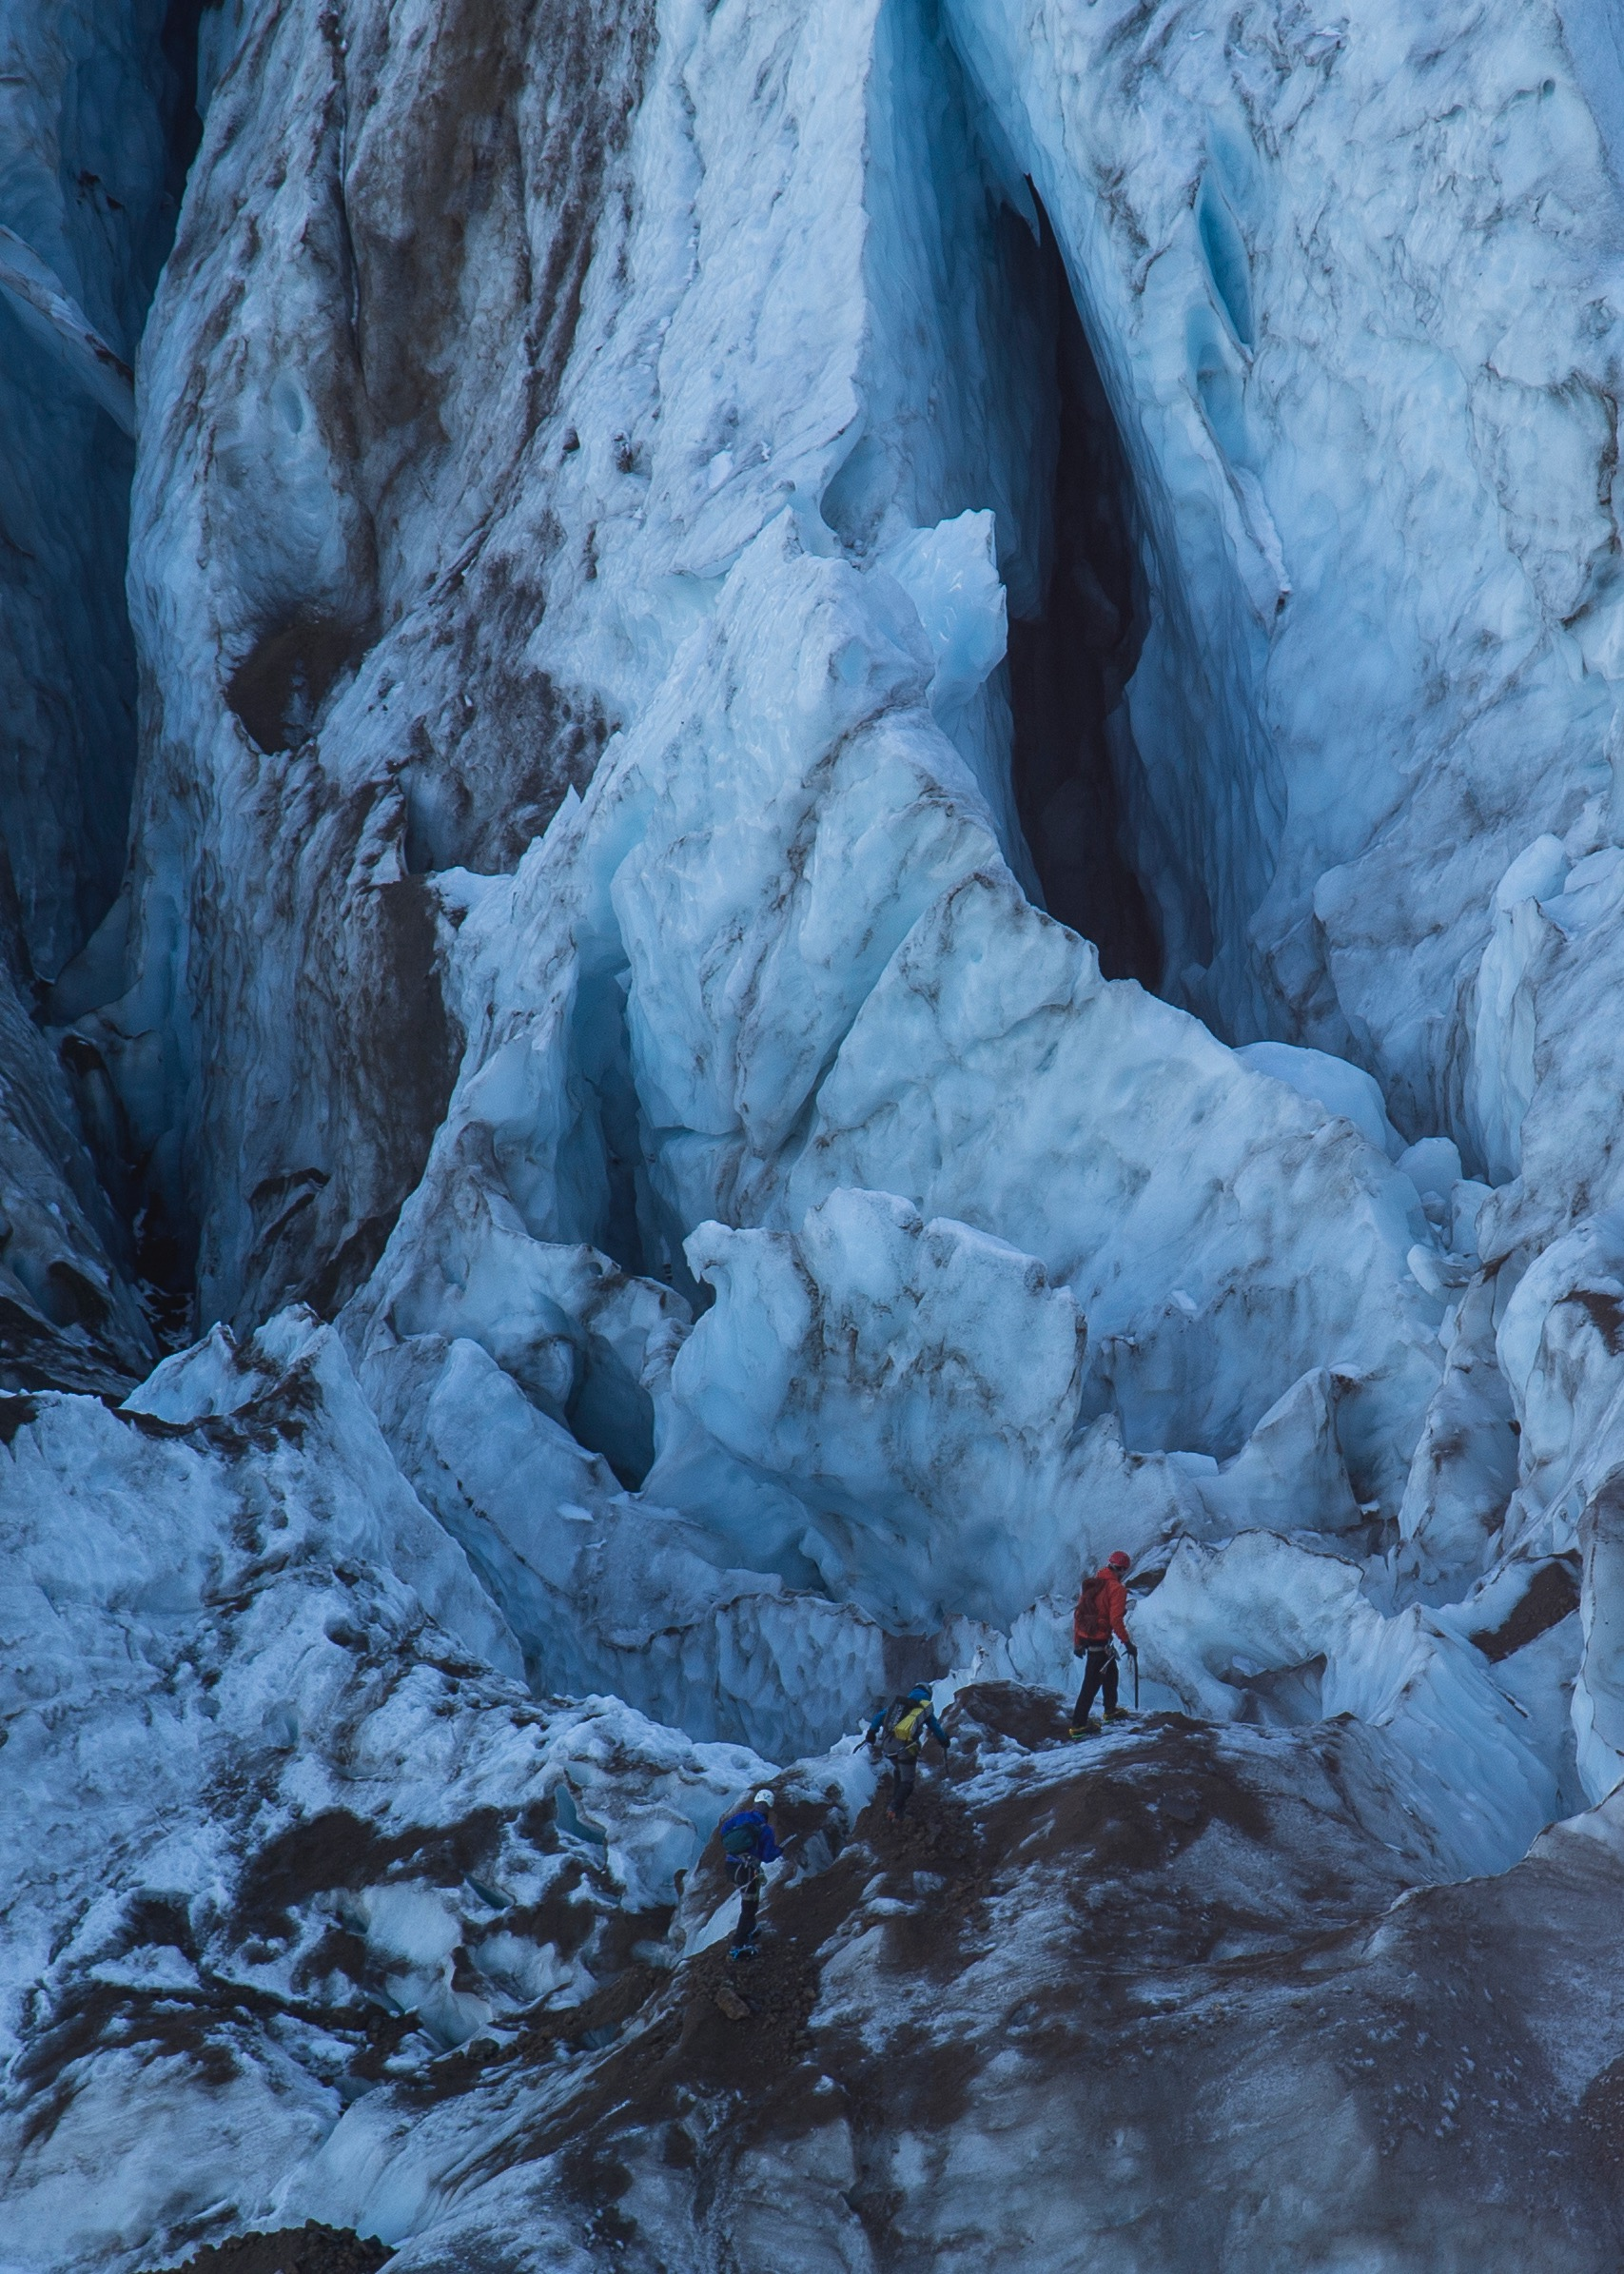 For a sense of scale on how big the crevasses really are…